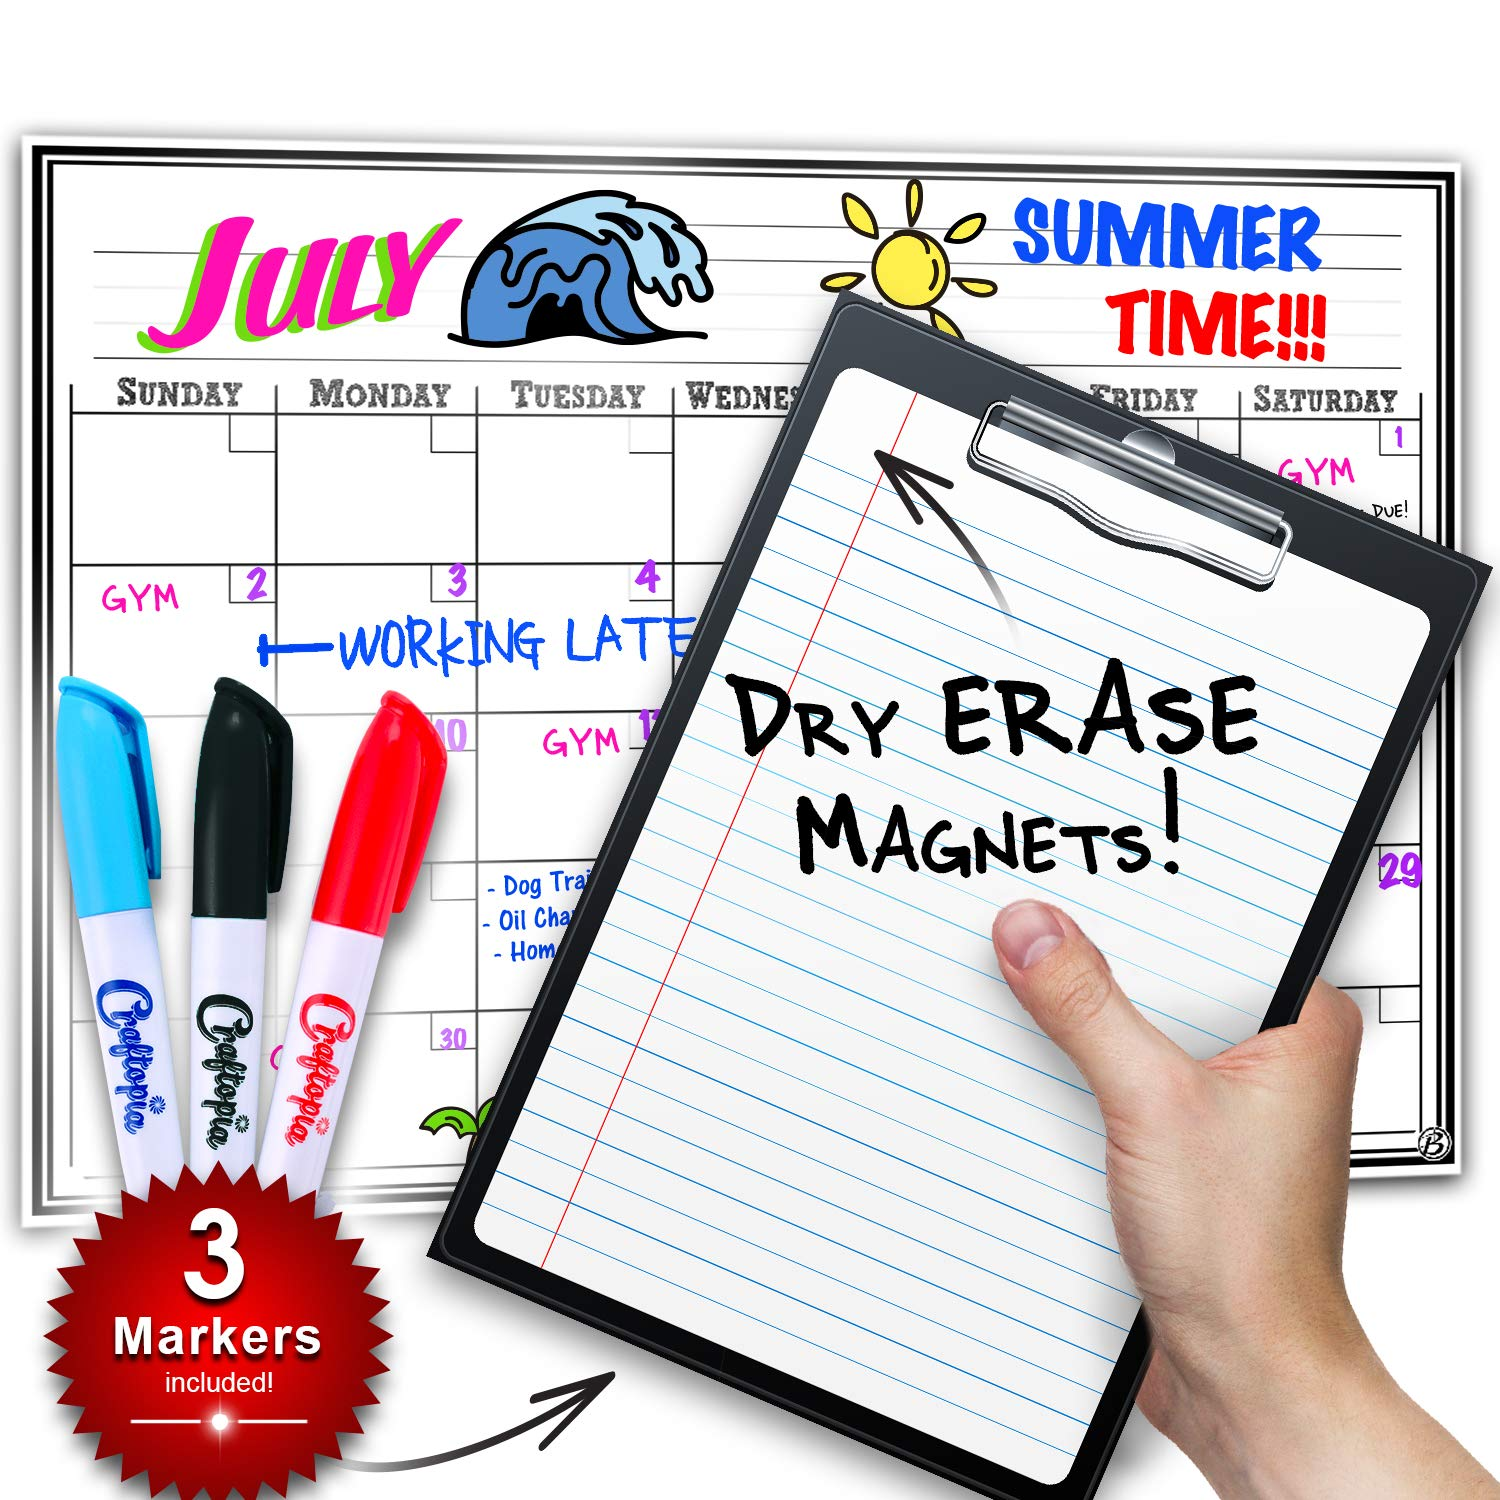 Scheduling Appointments Planner 12 x 16 Calendar Reminders Use for to do List Smart Planners Weekly Planner Magnetic Dry Erase Board for Kitchen Fridge